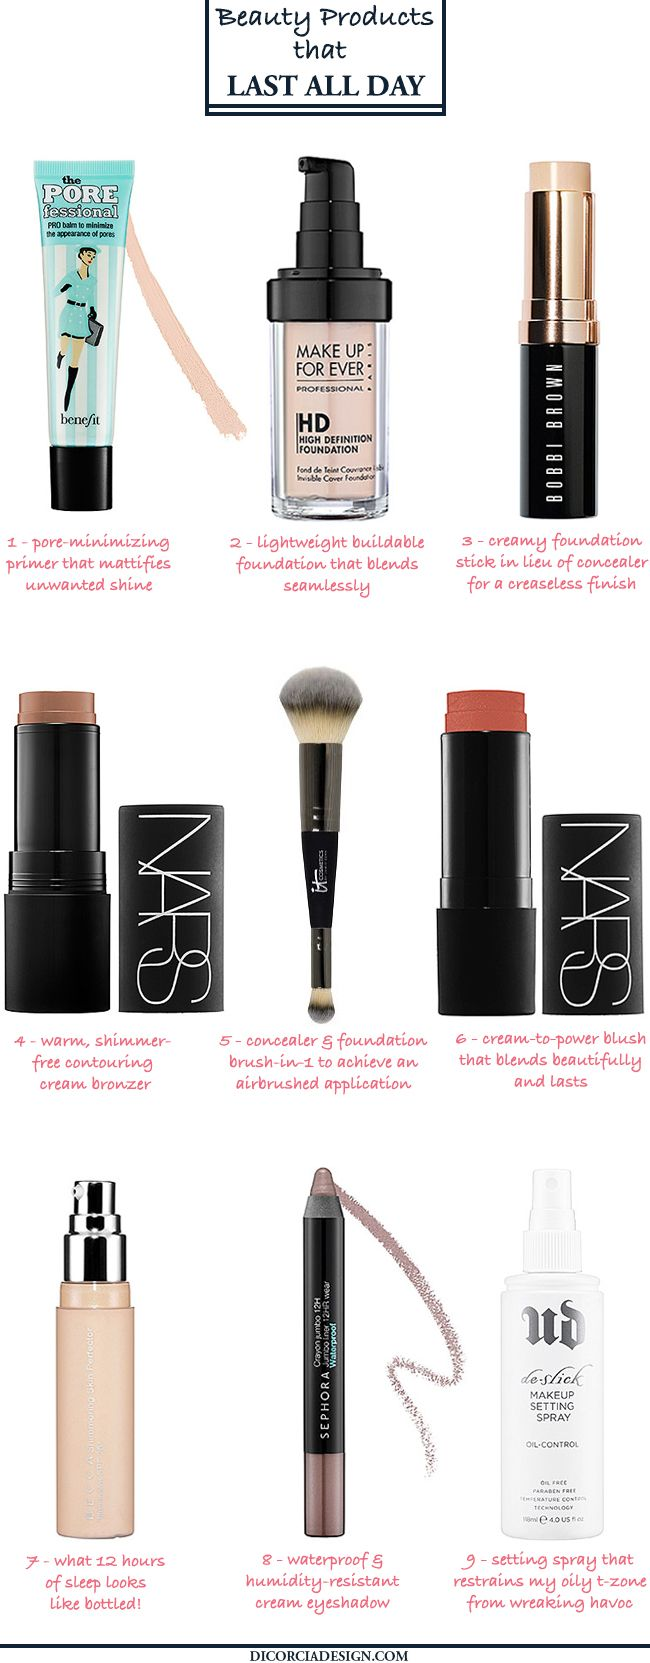 Beauty Product Favorites That Last ALL DAY Makeup